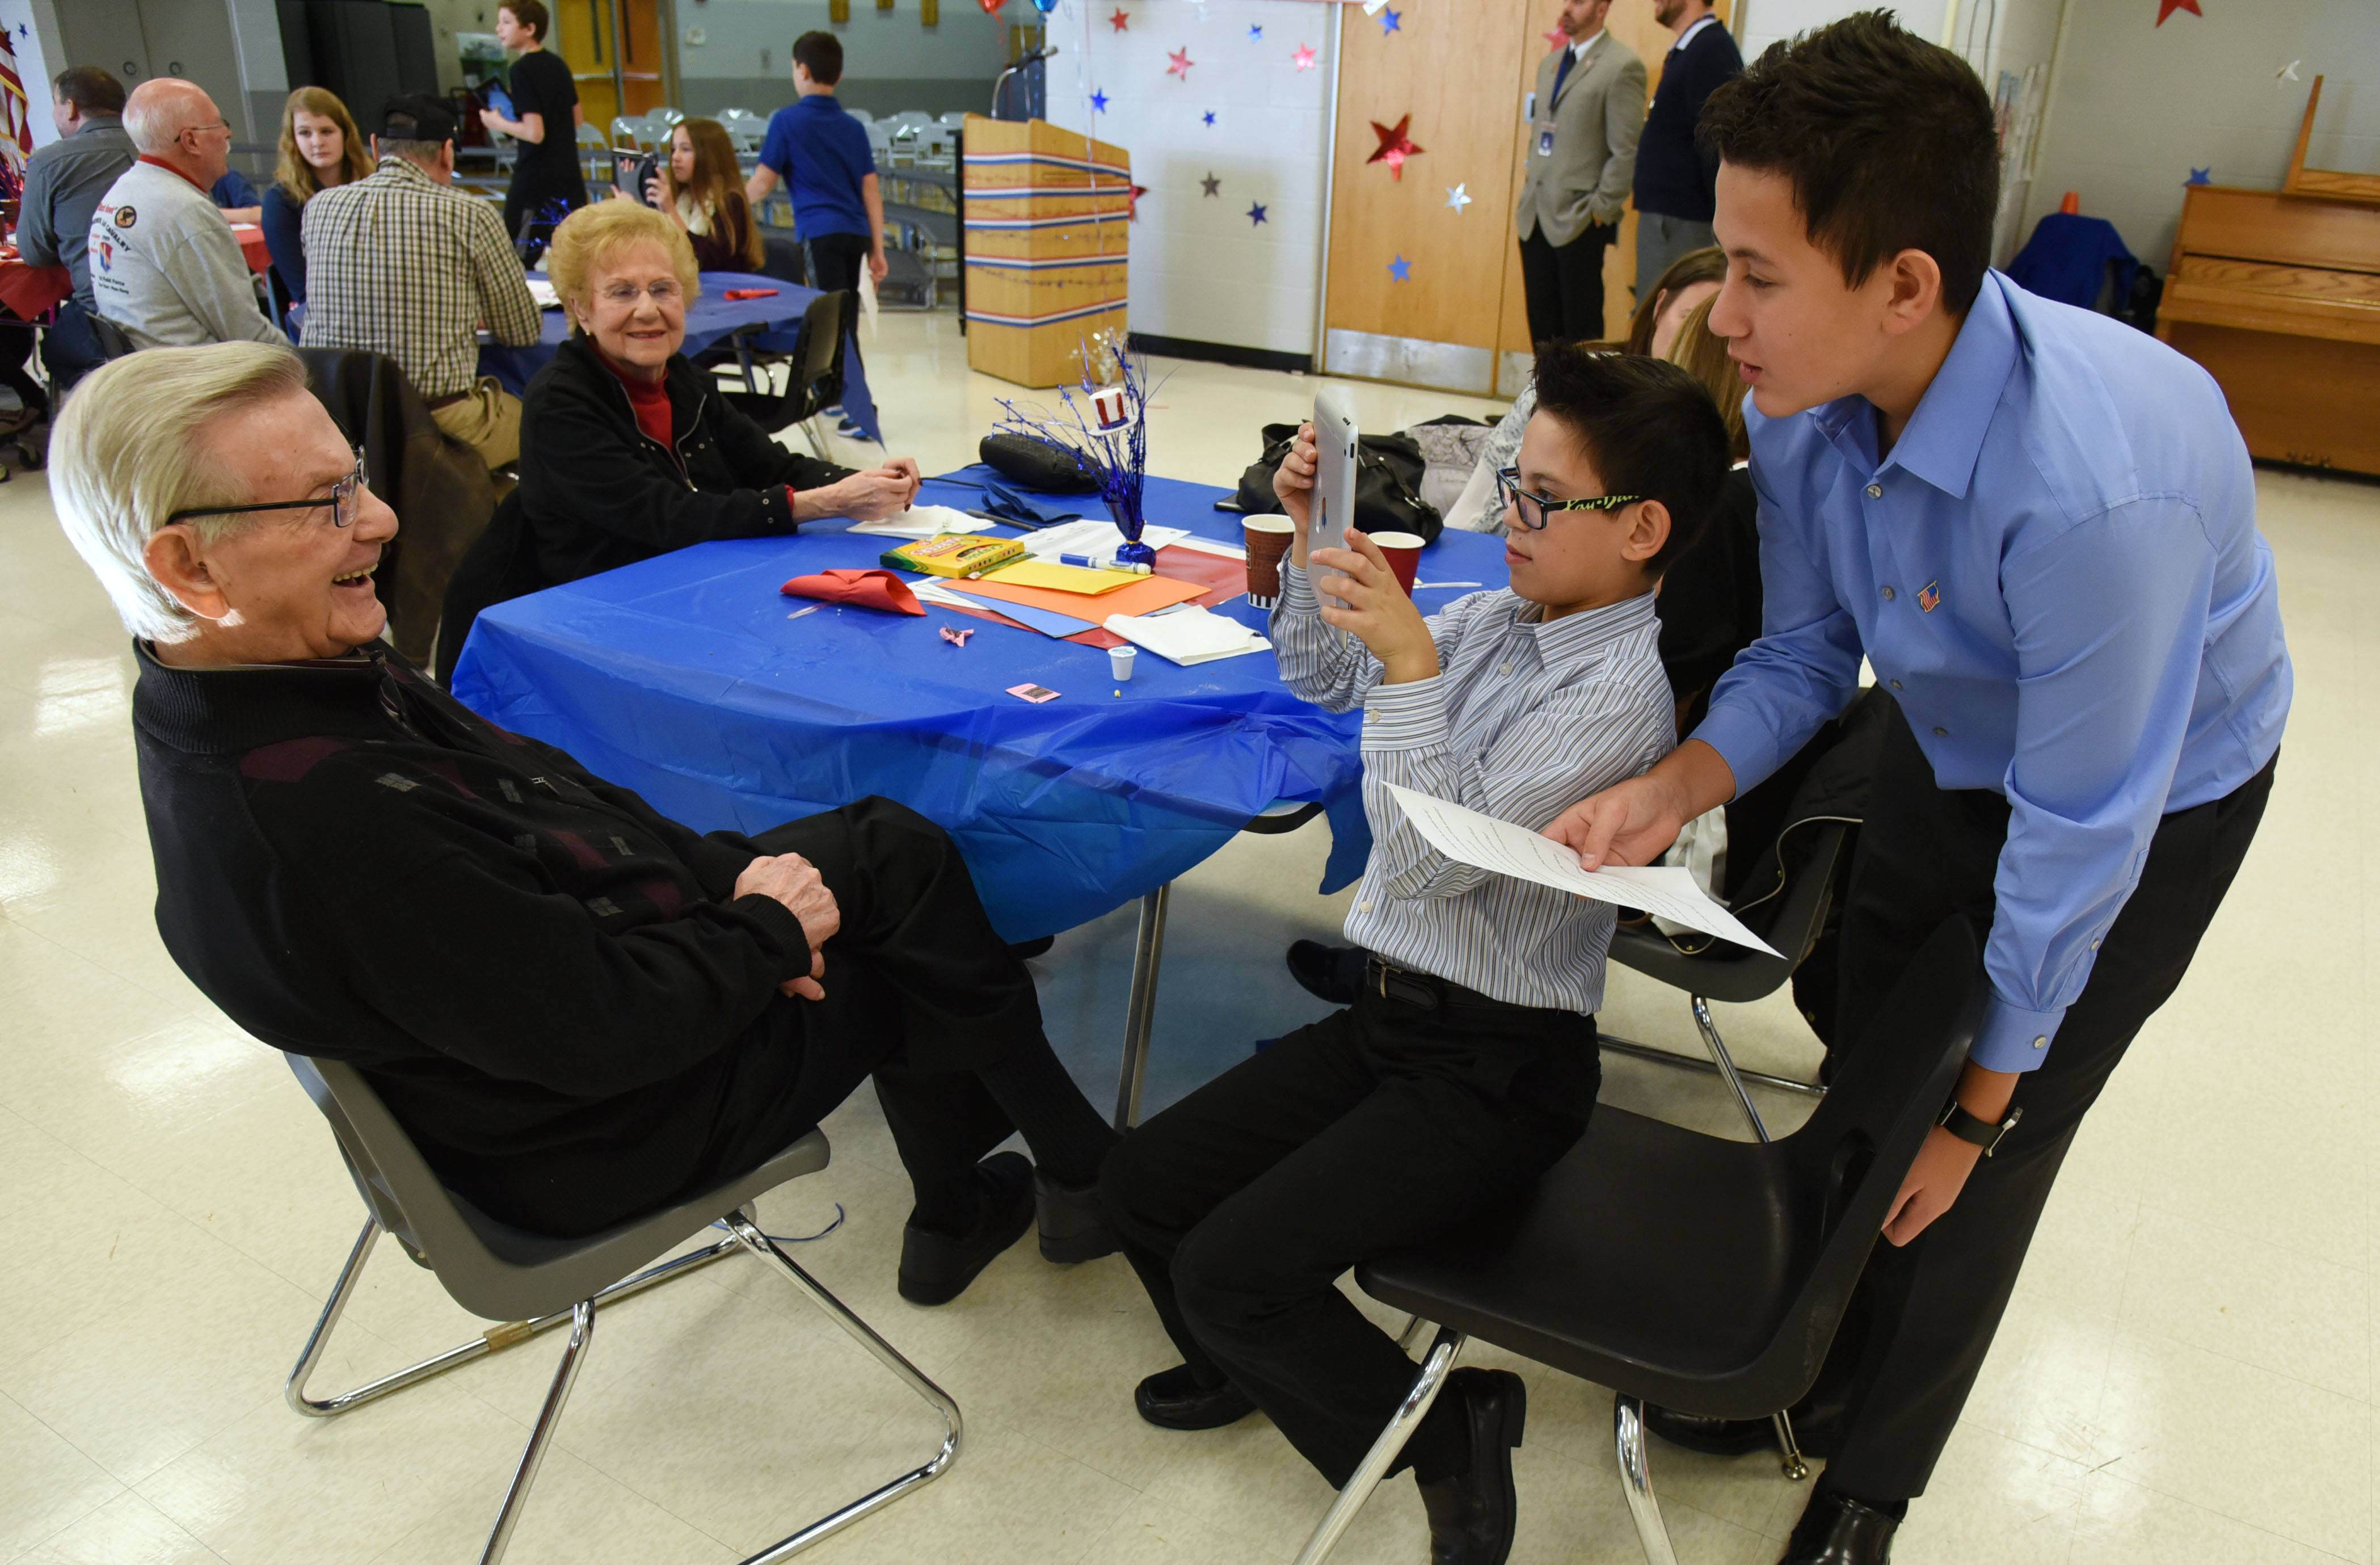 World War II Air Force veteran Max Sokol, left, of Glenview is interviewed by his great grandsons Ethan Espina, right, and Tyler Espina during the Hawthorn Middle School South's annual Veterans Day Breakfast Thursday in Vernon Hills. Students interviewed the visiting veterans about their experiences while serving in the military.